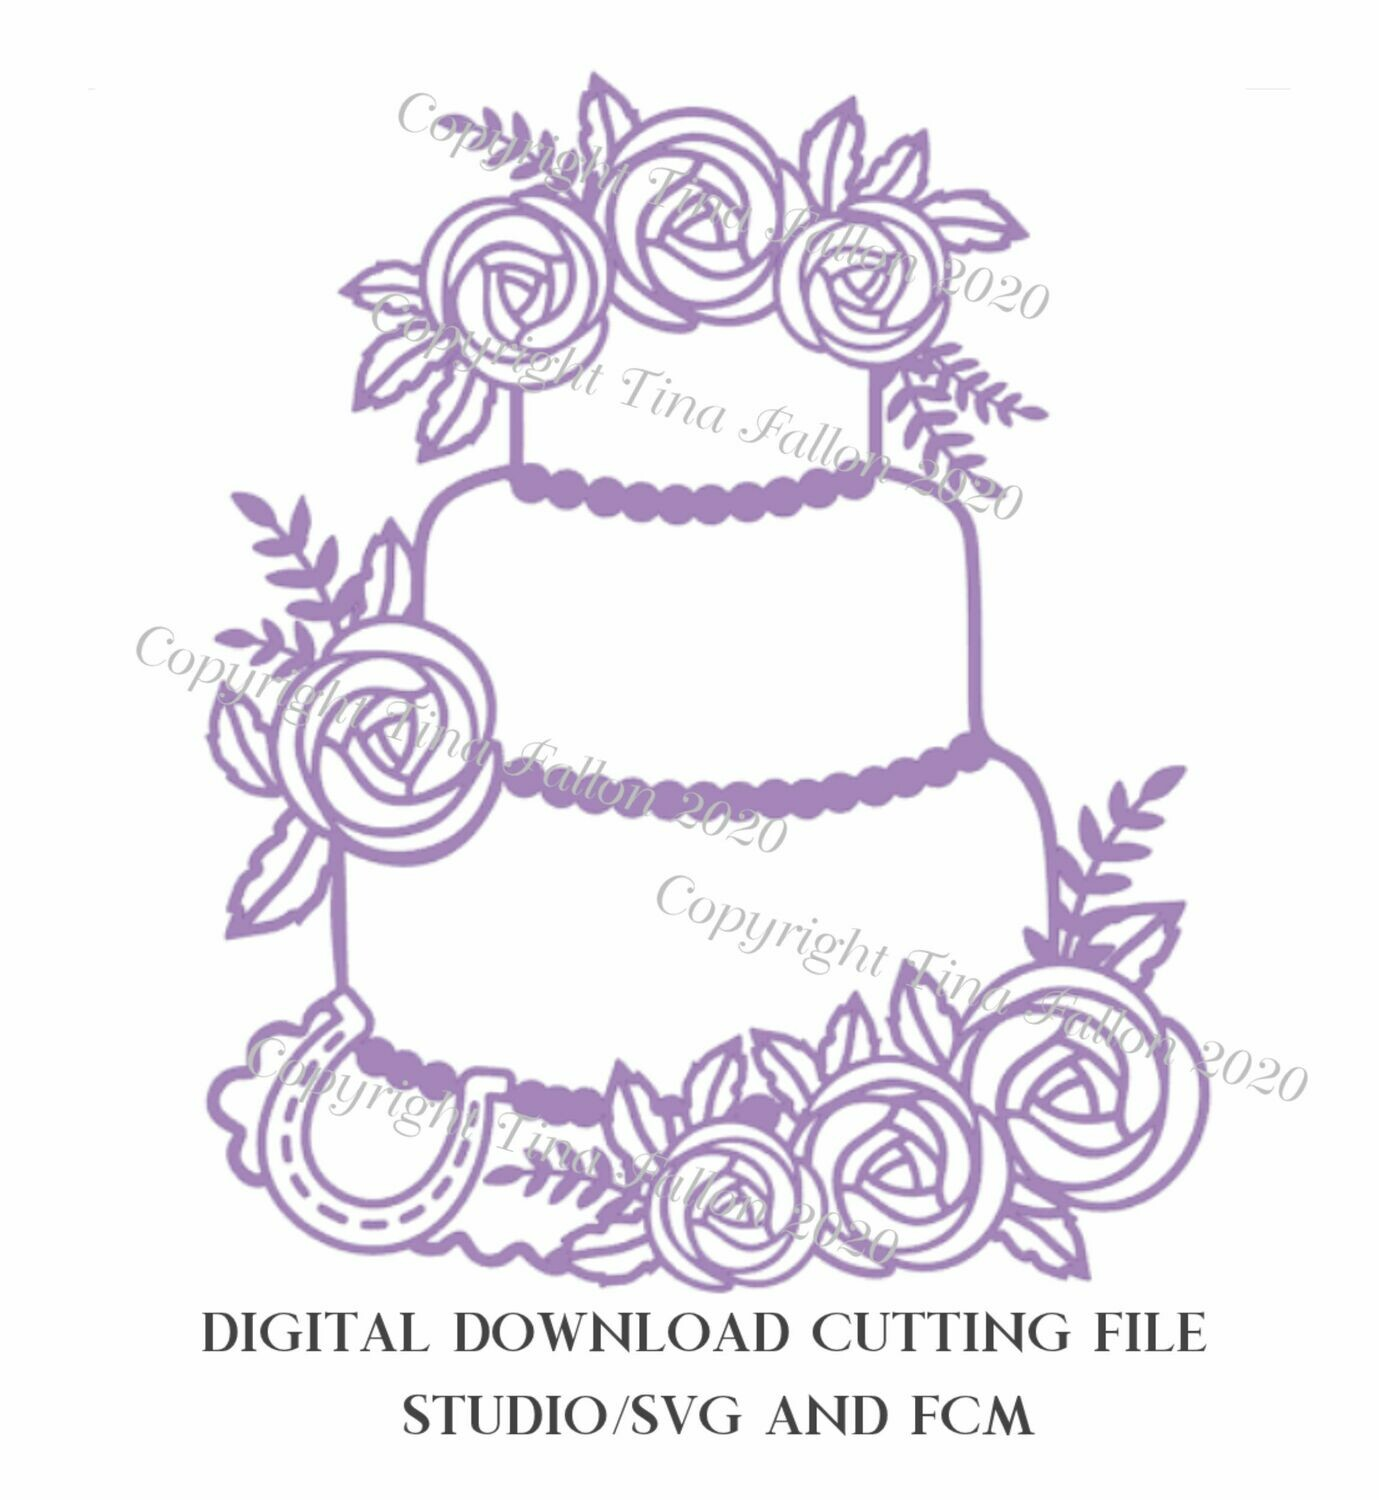 Wedding Cake Menu Rose themed - Design no 1 download SVG/Studio and FCM digital cutting file